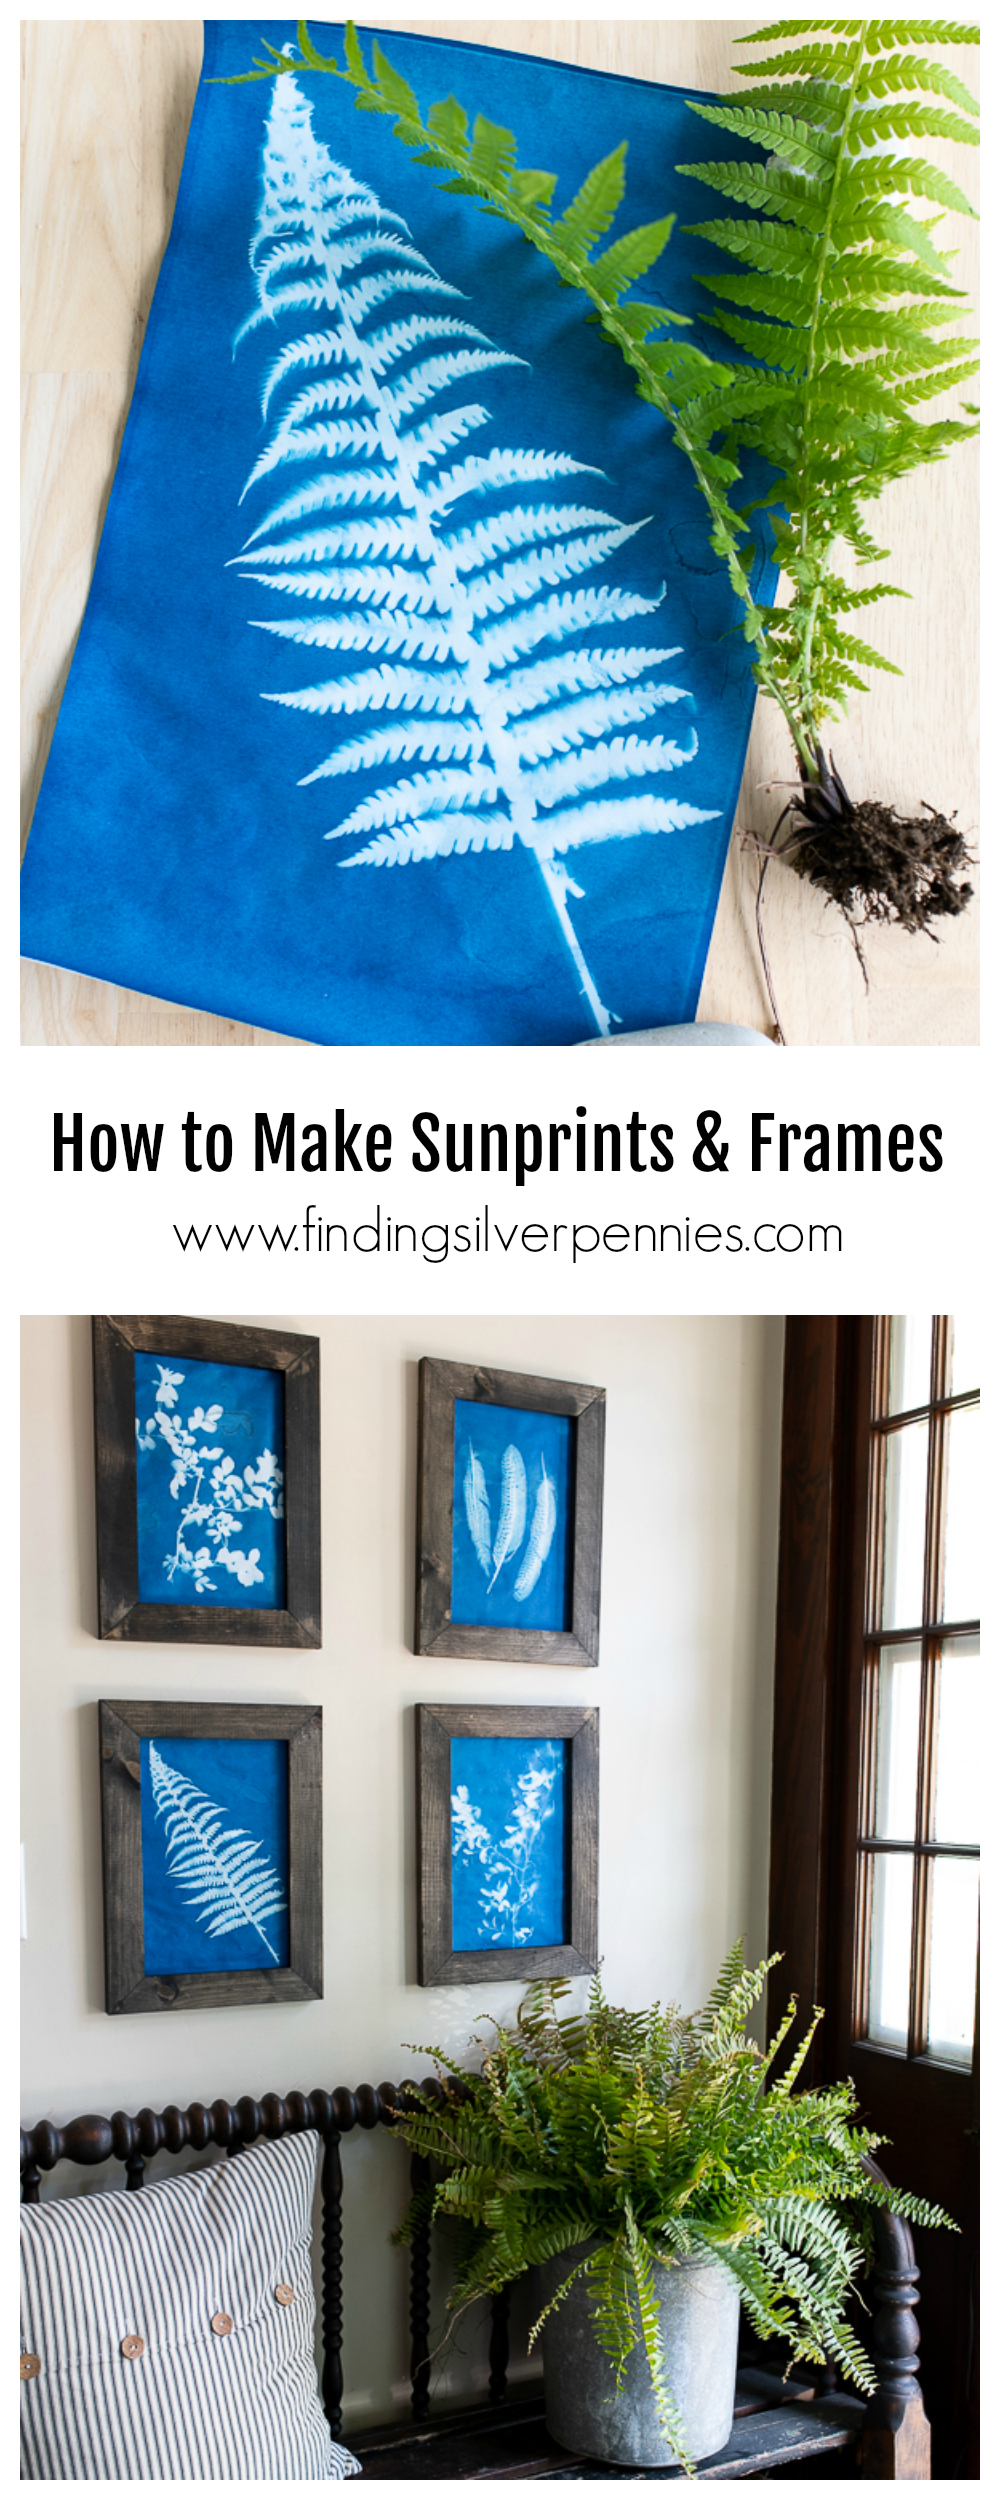 How to Make Sunprints and Rustic Frames - Finding Silver Pennies